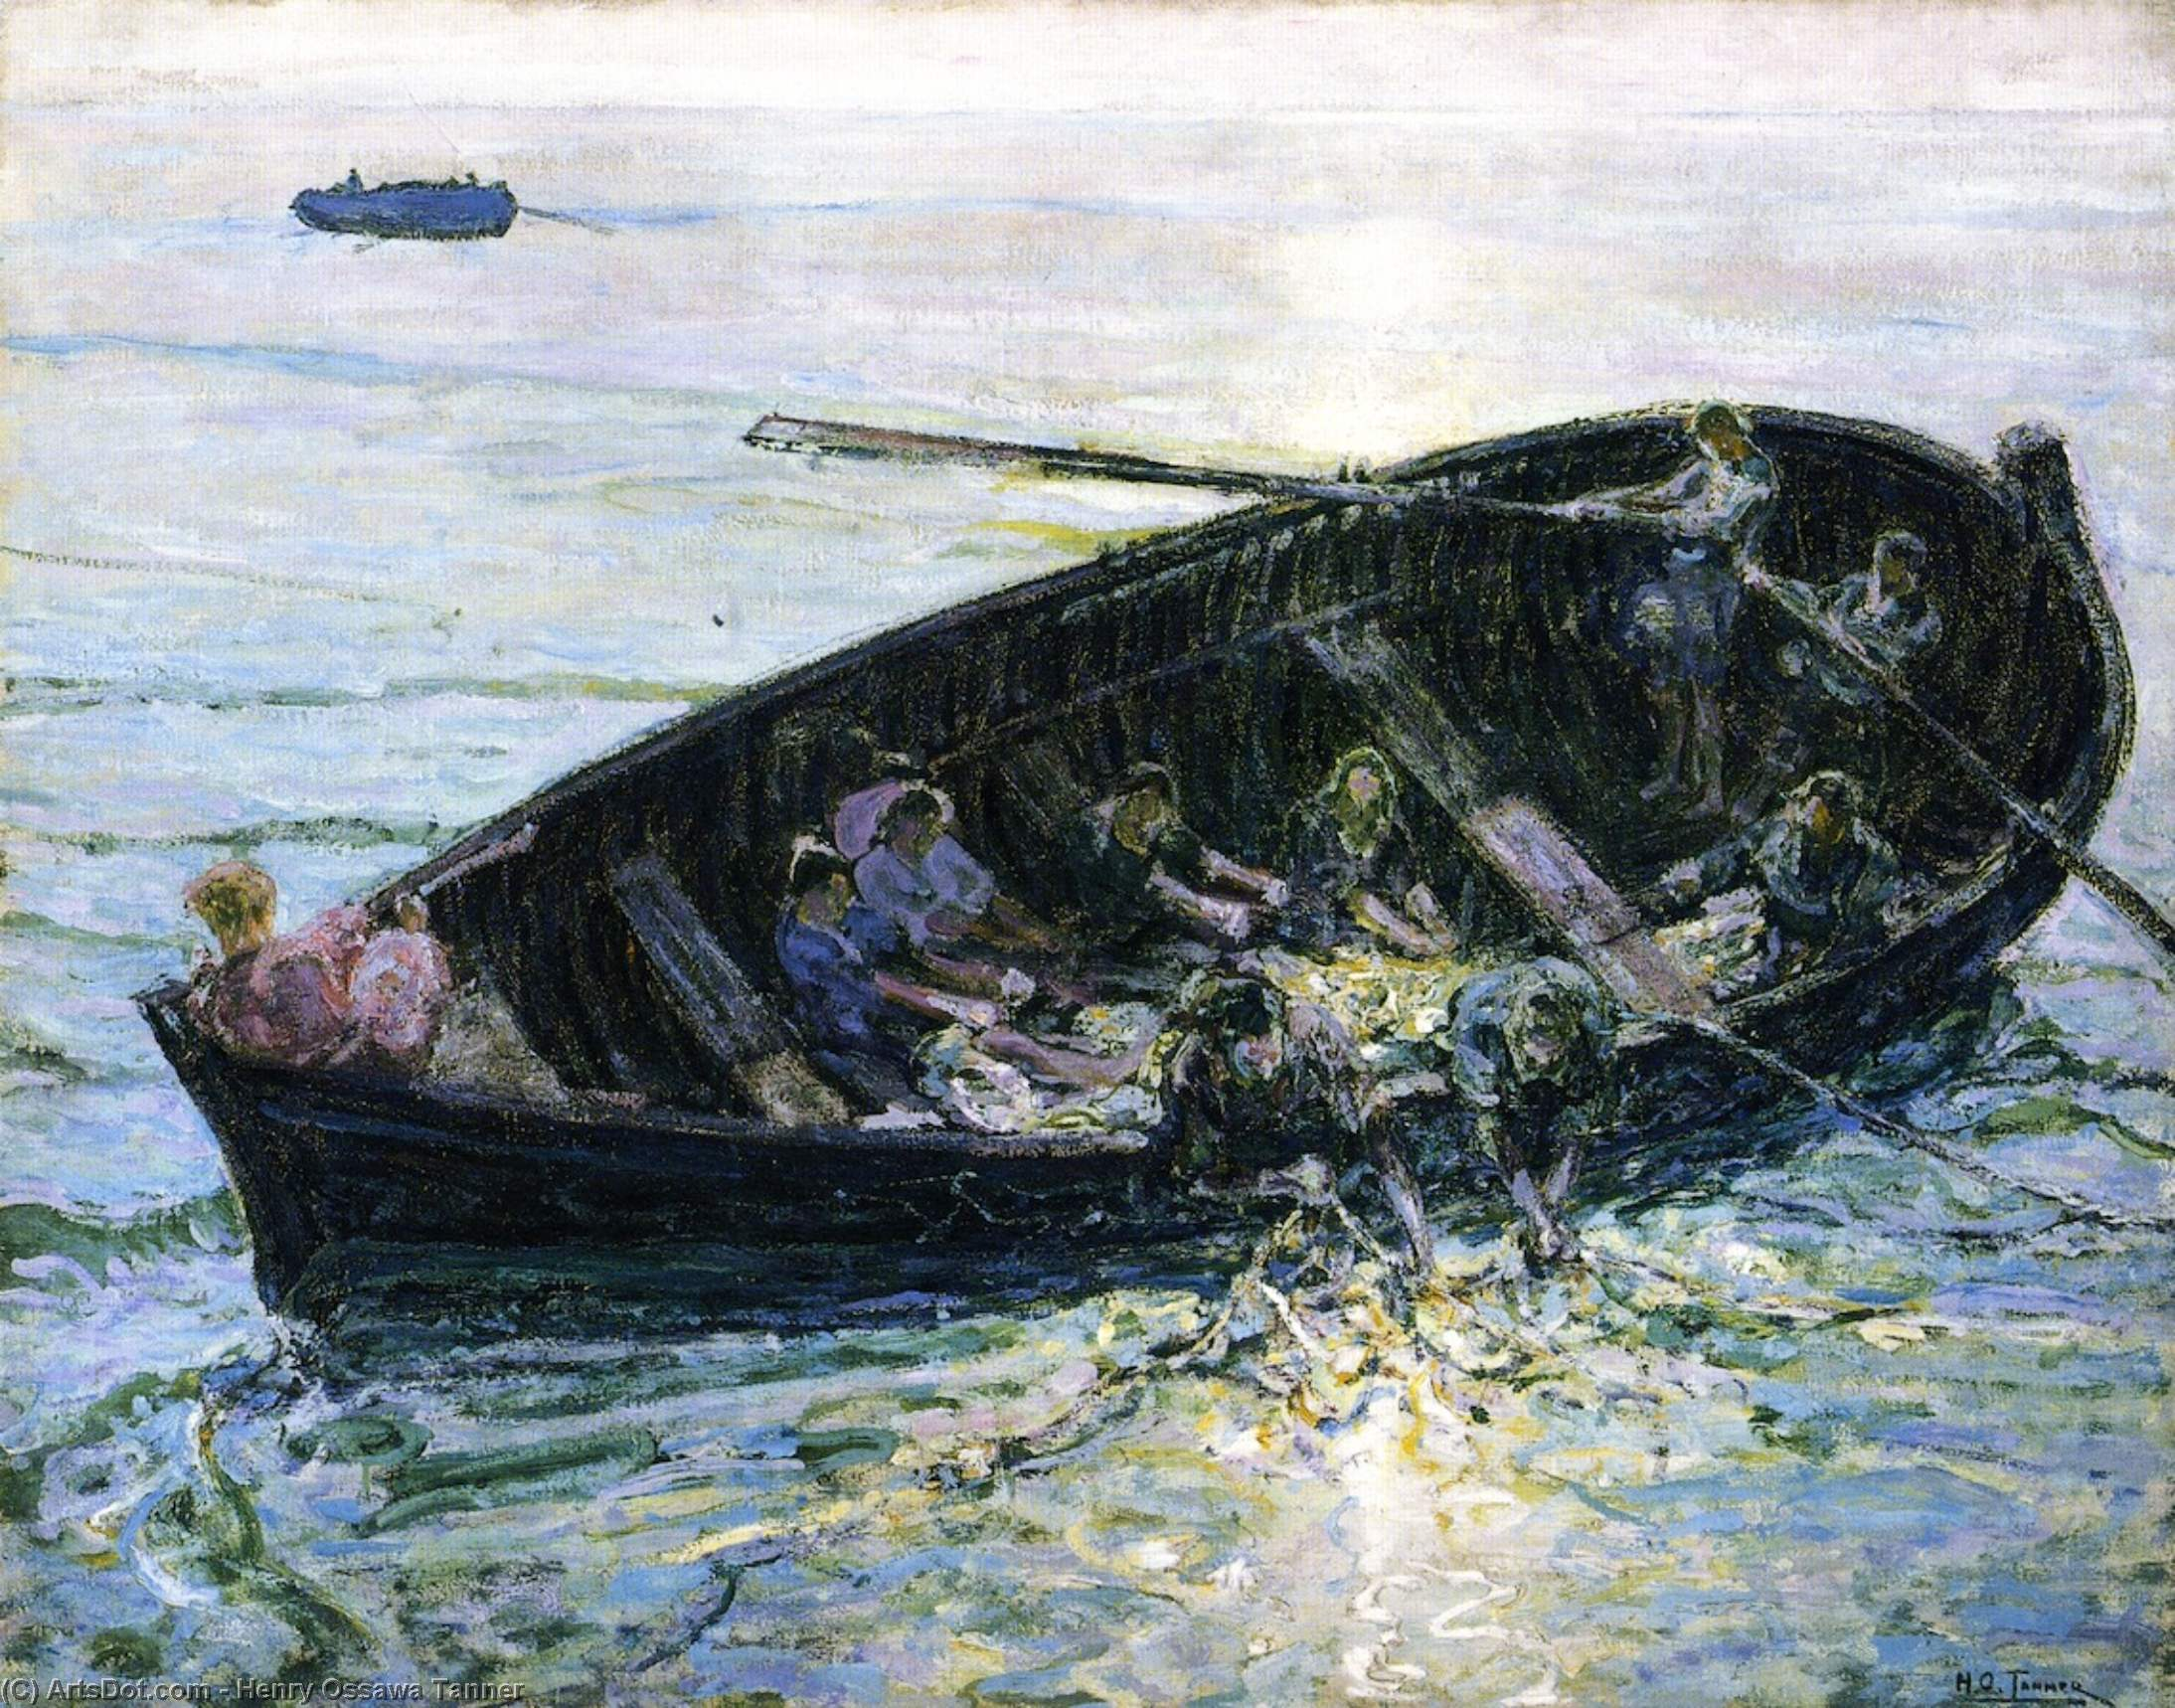 Miraculous Haul of Fishes, 1913 by Henry Ossawa Tanner (1859-1937, United States) | Oil Painting | ArtsDot.com